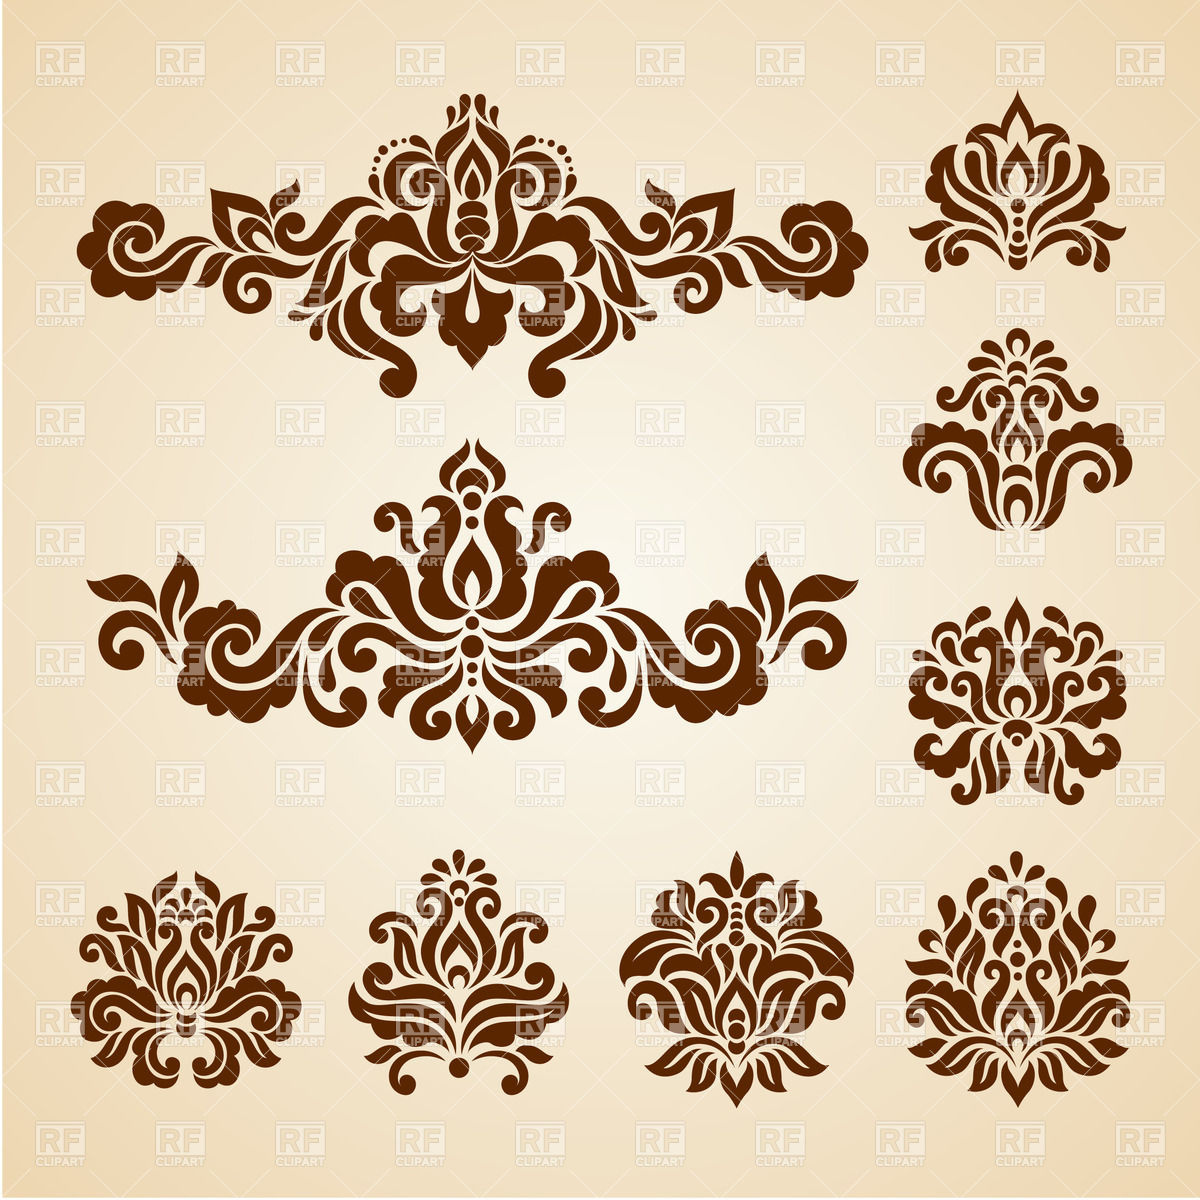 Decorative Elements Clipart - Clipart Kid